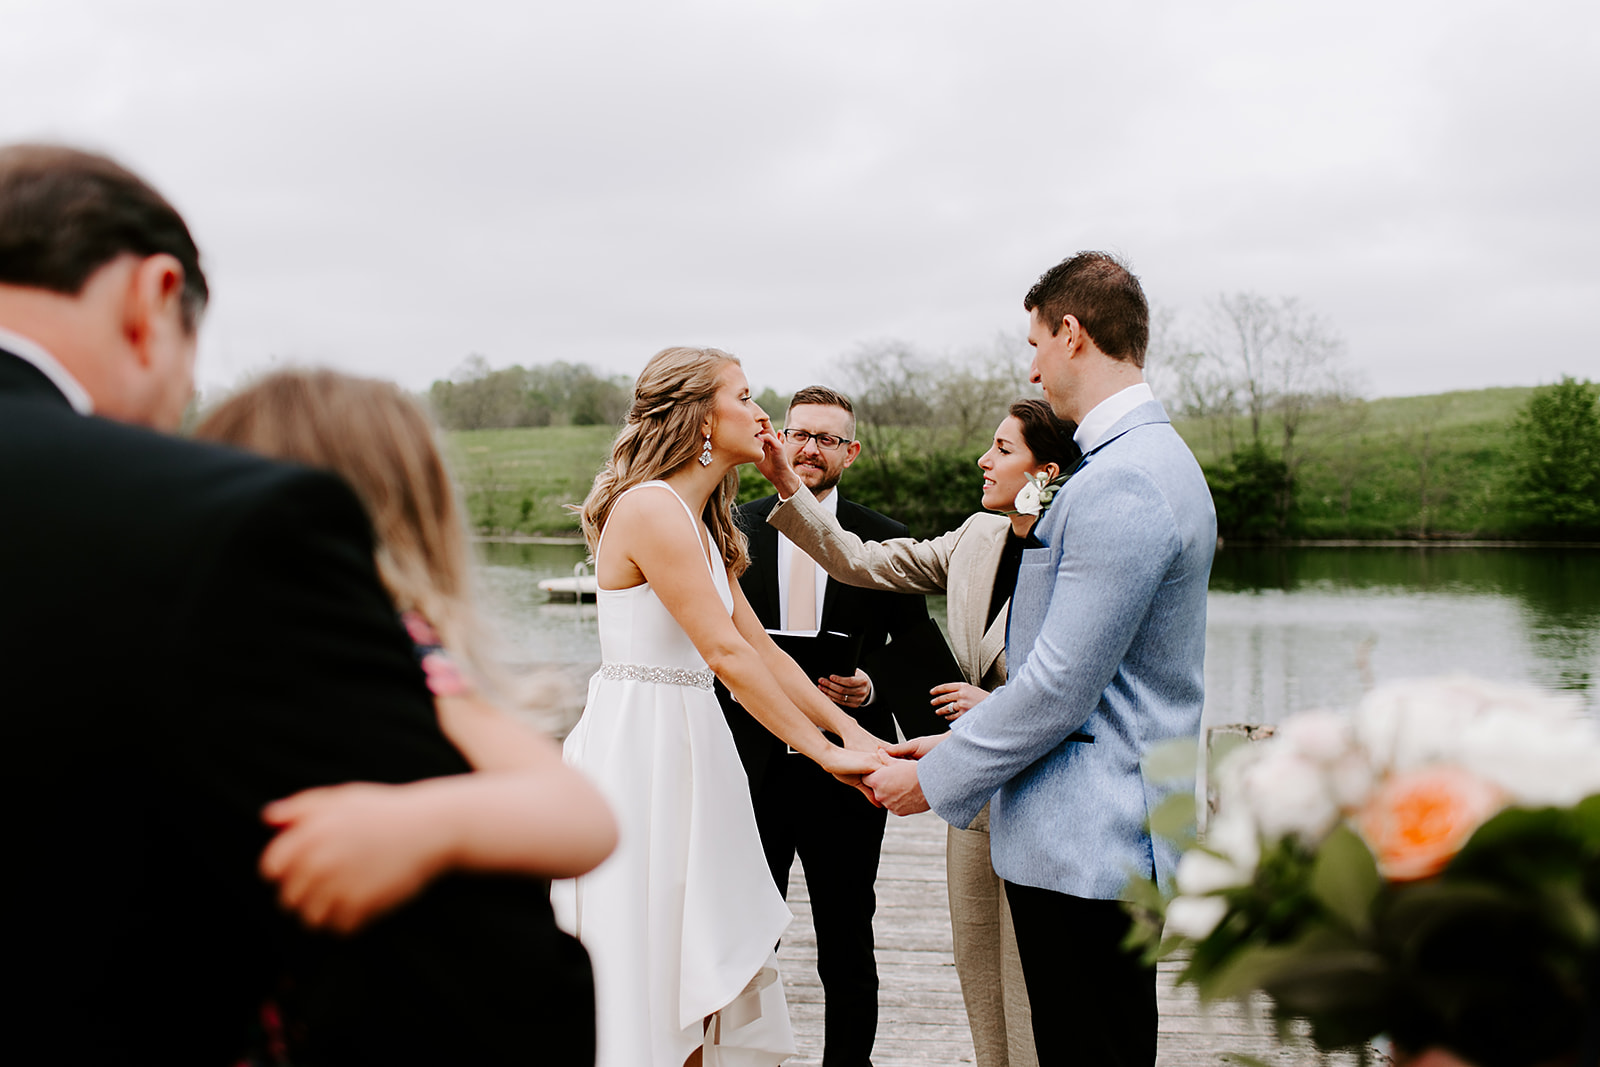 Traders Point Creamery Elopement in Zionsville, Indiana | Wedding vows, photography by Emily Wehner